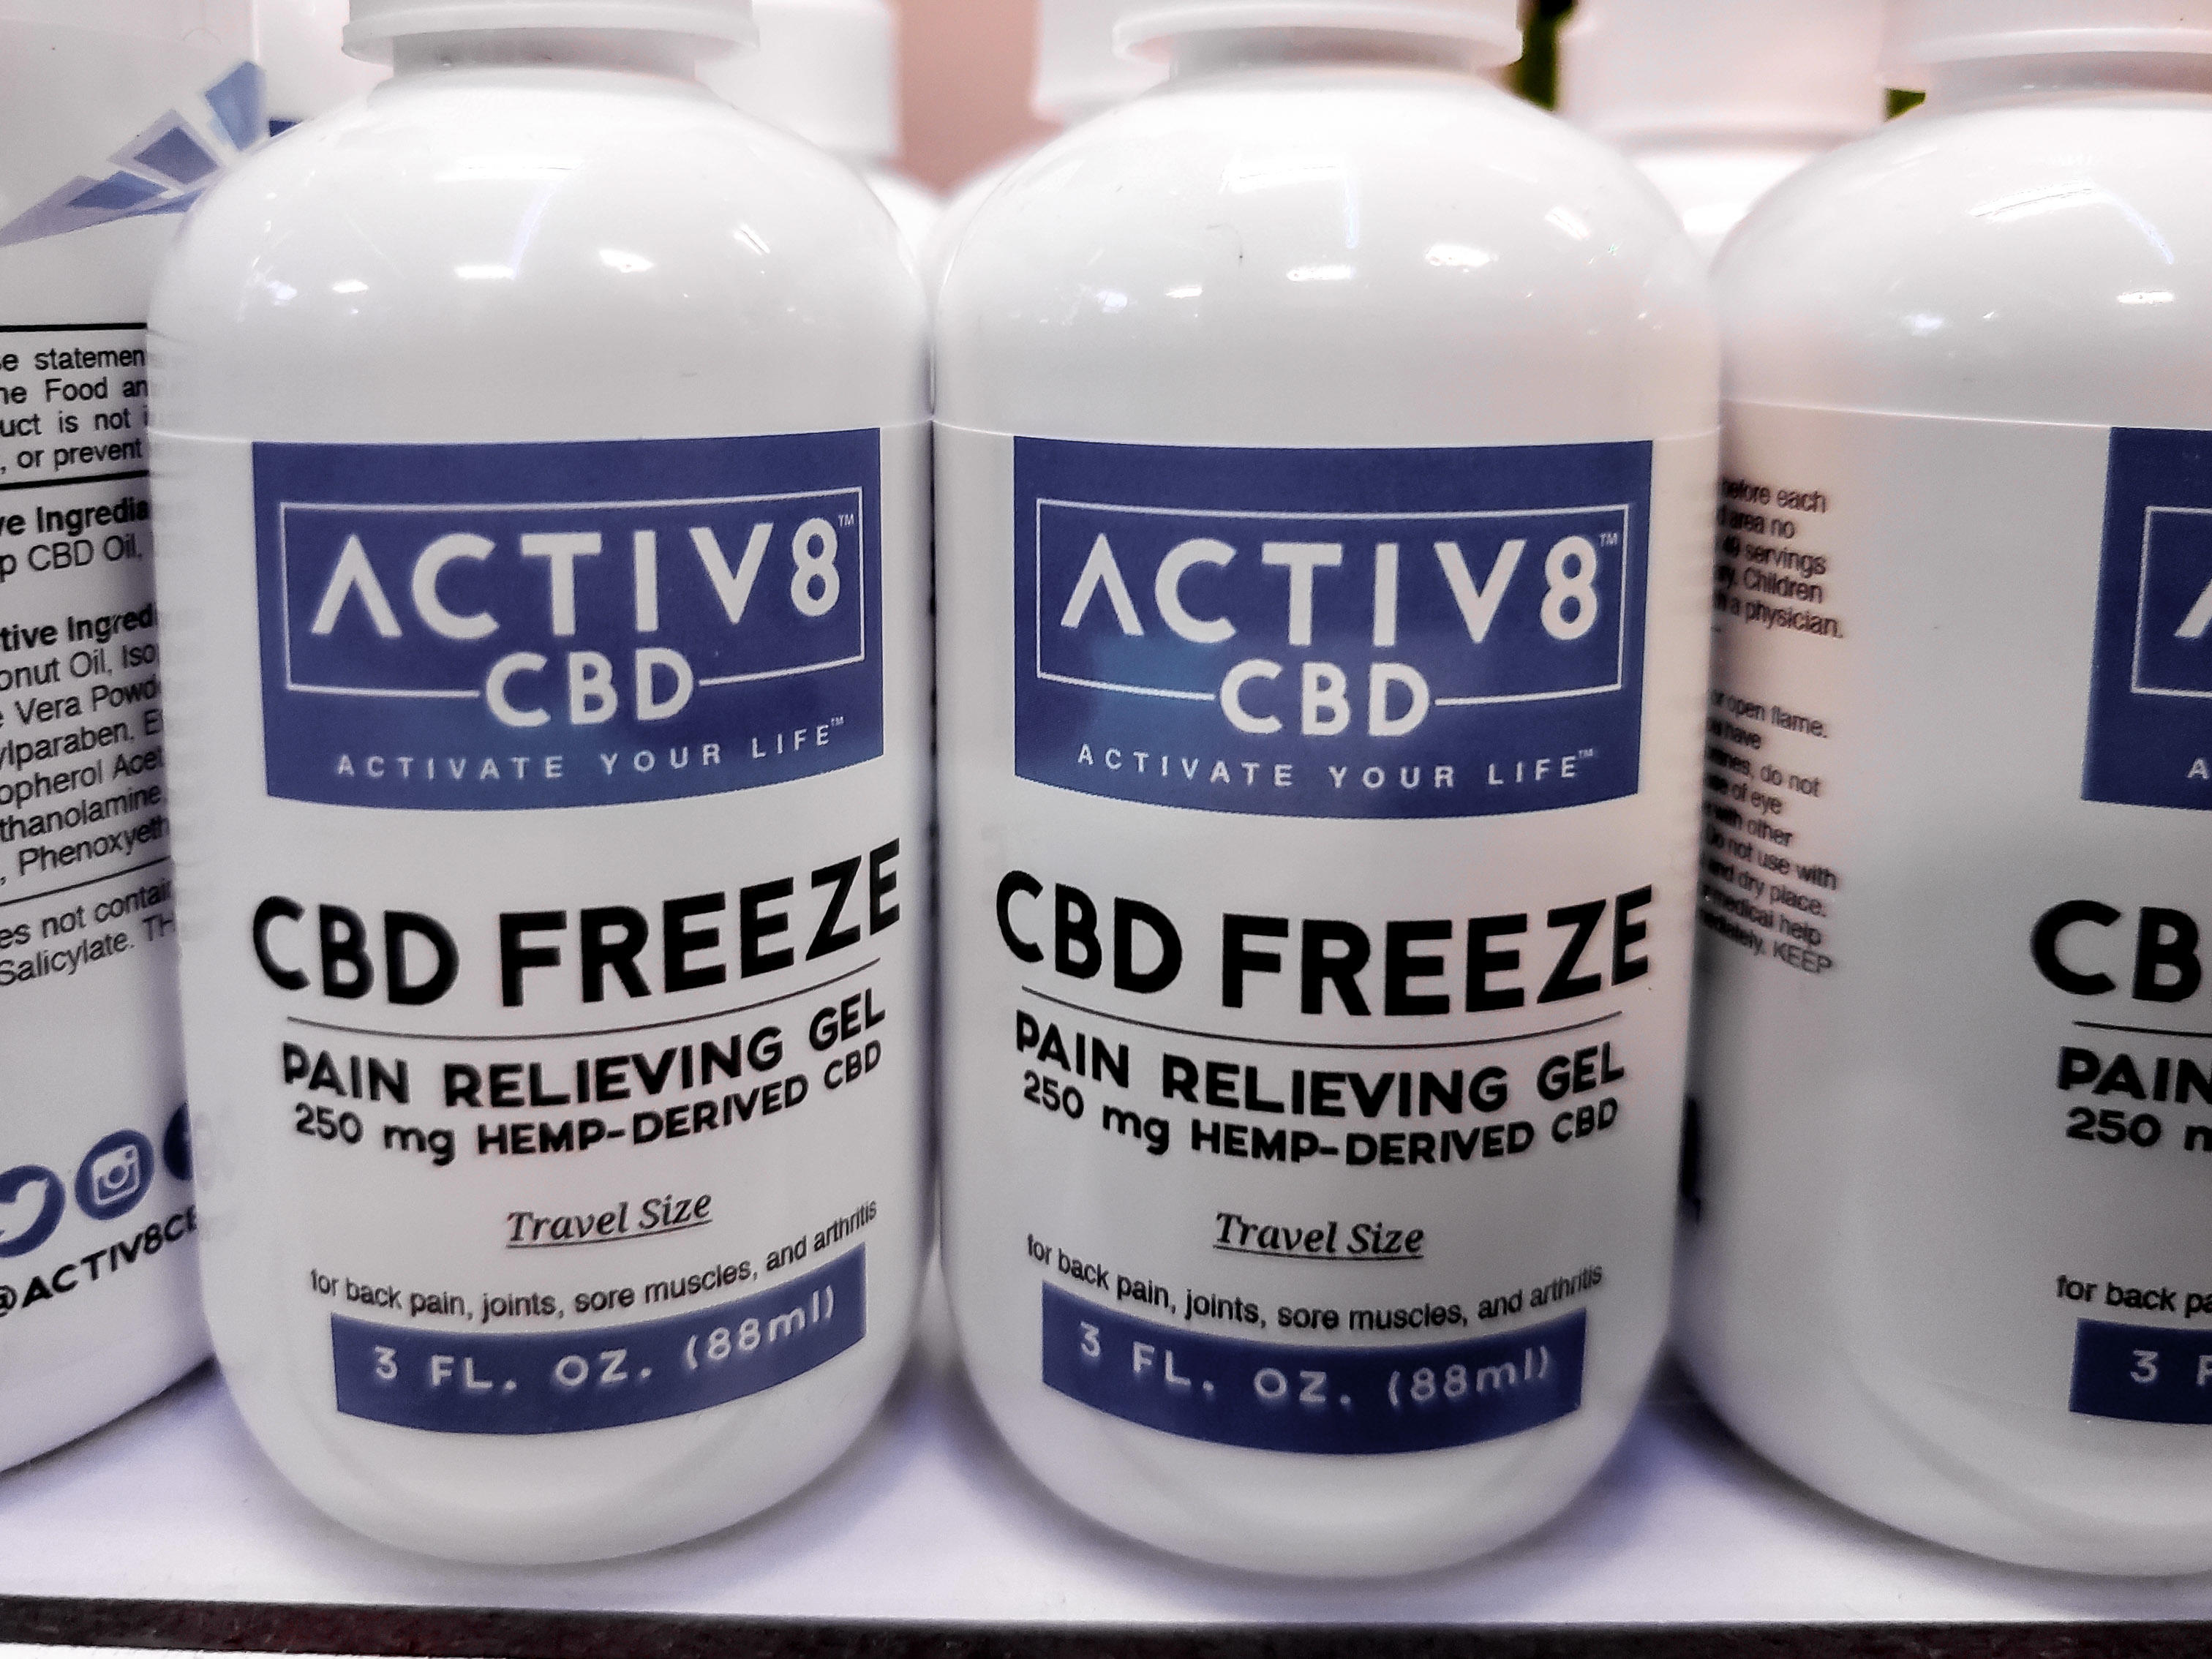 ACTIV8 CBD Freeze